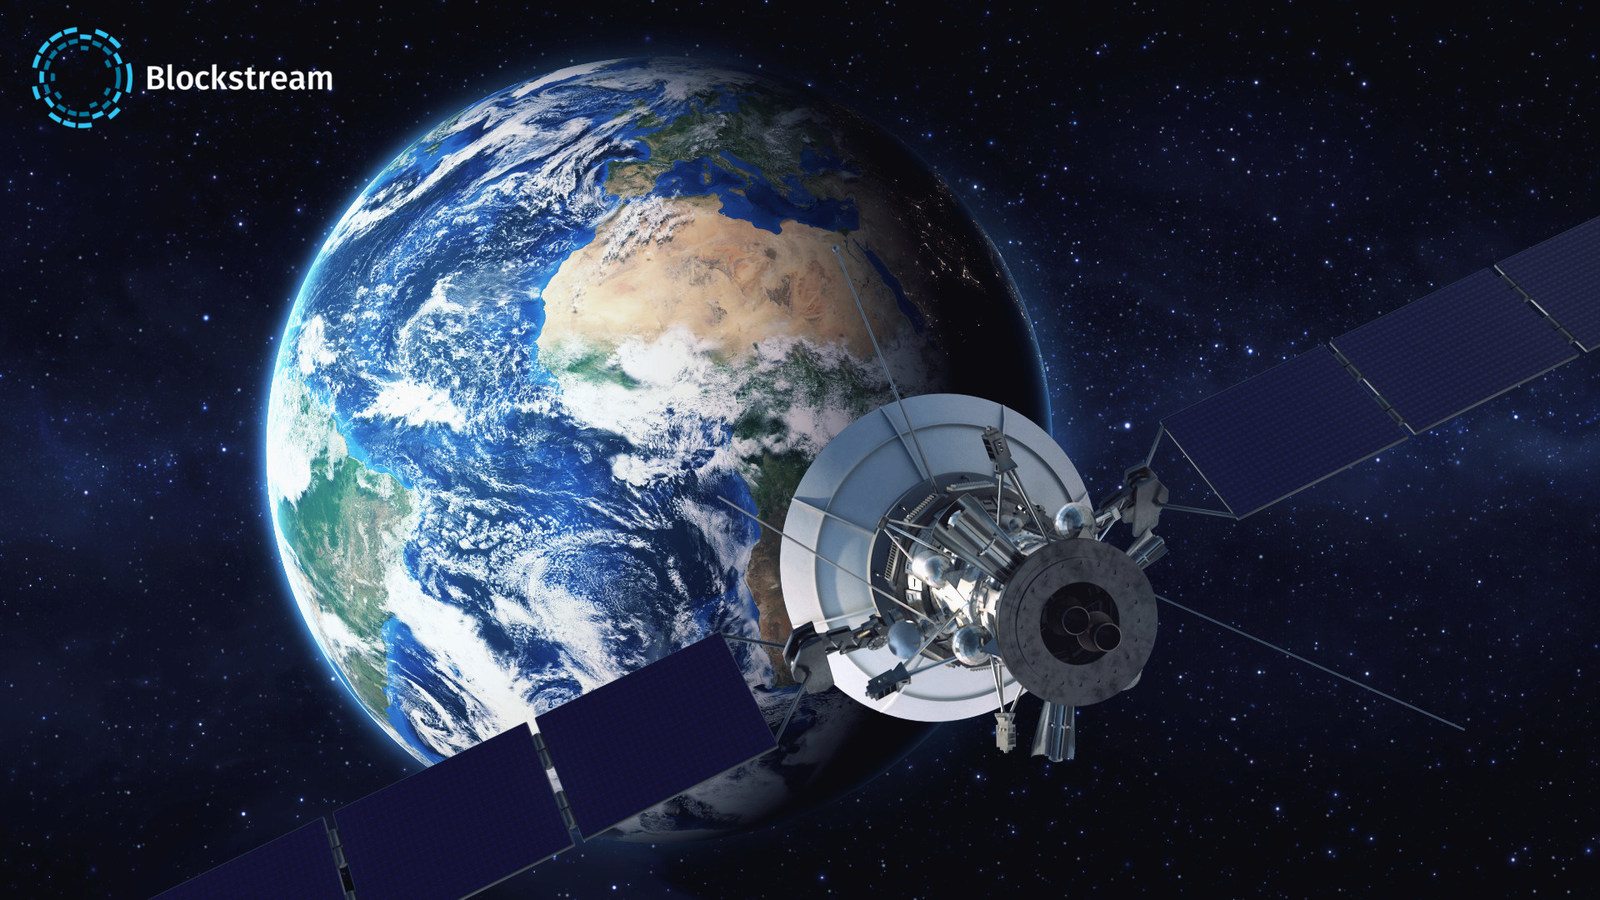 Announcing Blockstream Satellite, a new service that broadcasts real-time Bitcoin blockchain data from satellites in space to almost everyone on the planet (PRNewsfoto/Blockstream)